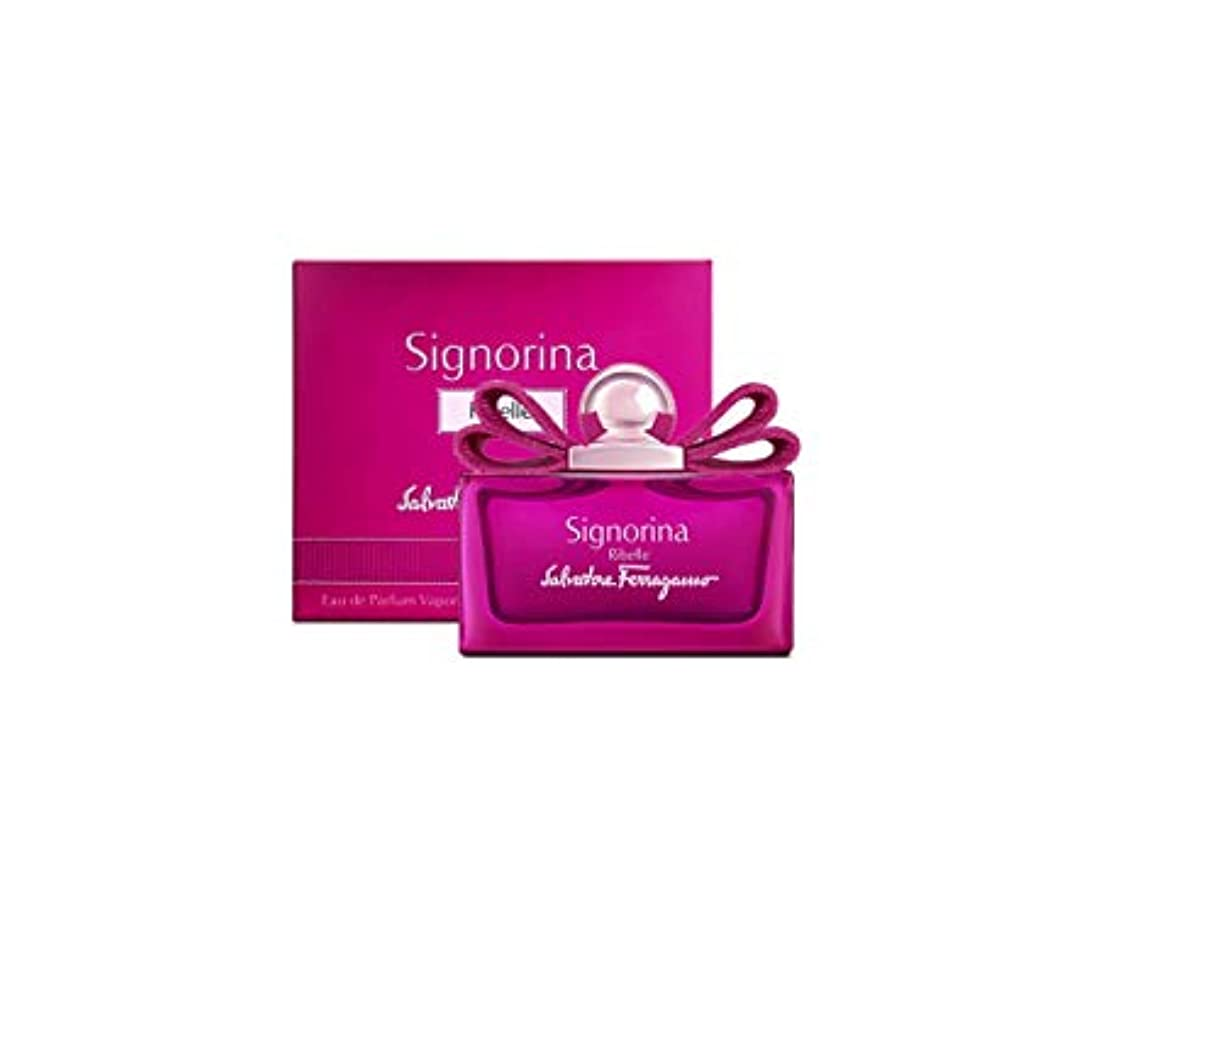 者違反するハシーSALVATORE FERRAGAMO Signorina Ribelle EDP SP 100ml